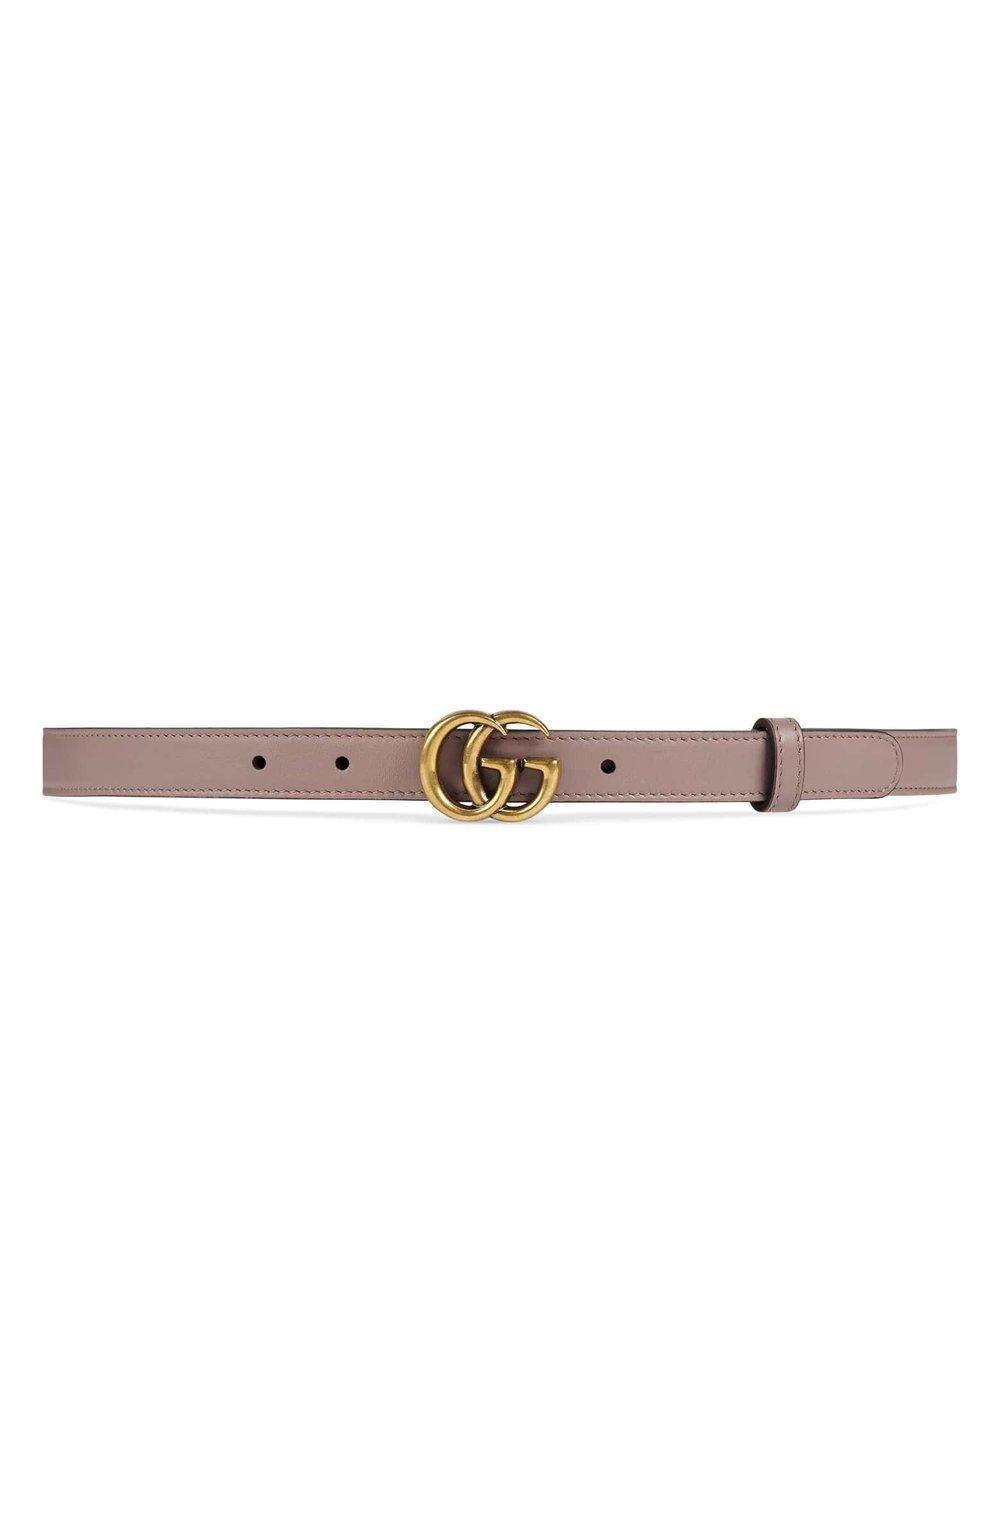 Gucci Belt -